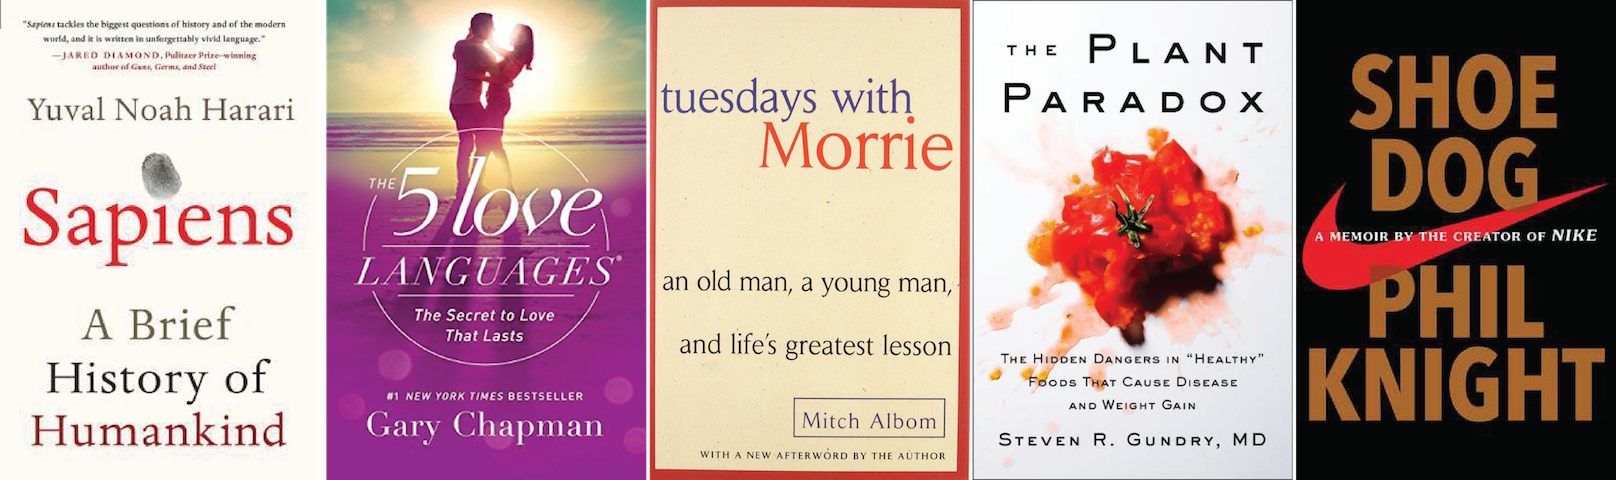 a review of the novel tuesdays with morrie by mitch albom Tuesdays with morrie is a magical chronicle of their time together, through which mitch shares morrie's lasting gift with the world ©1997 mitch albom (p)2004 random house, inc random house audio, a division of random house, inc.